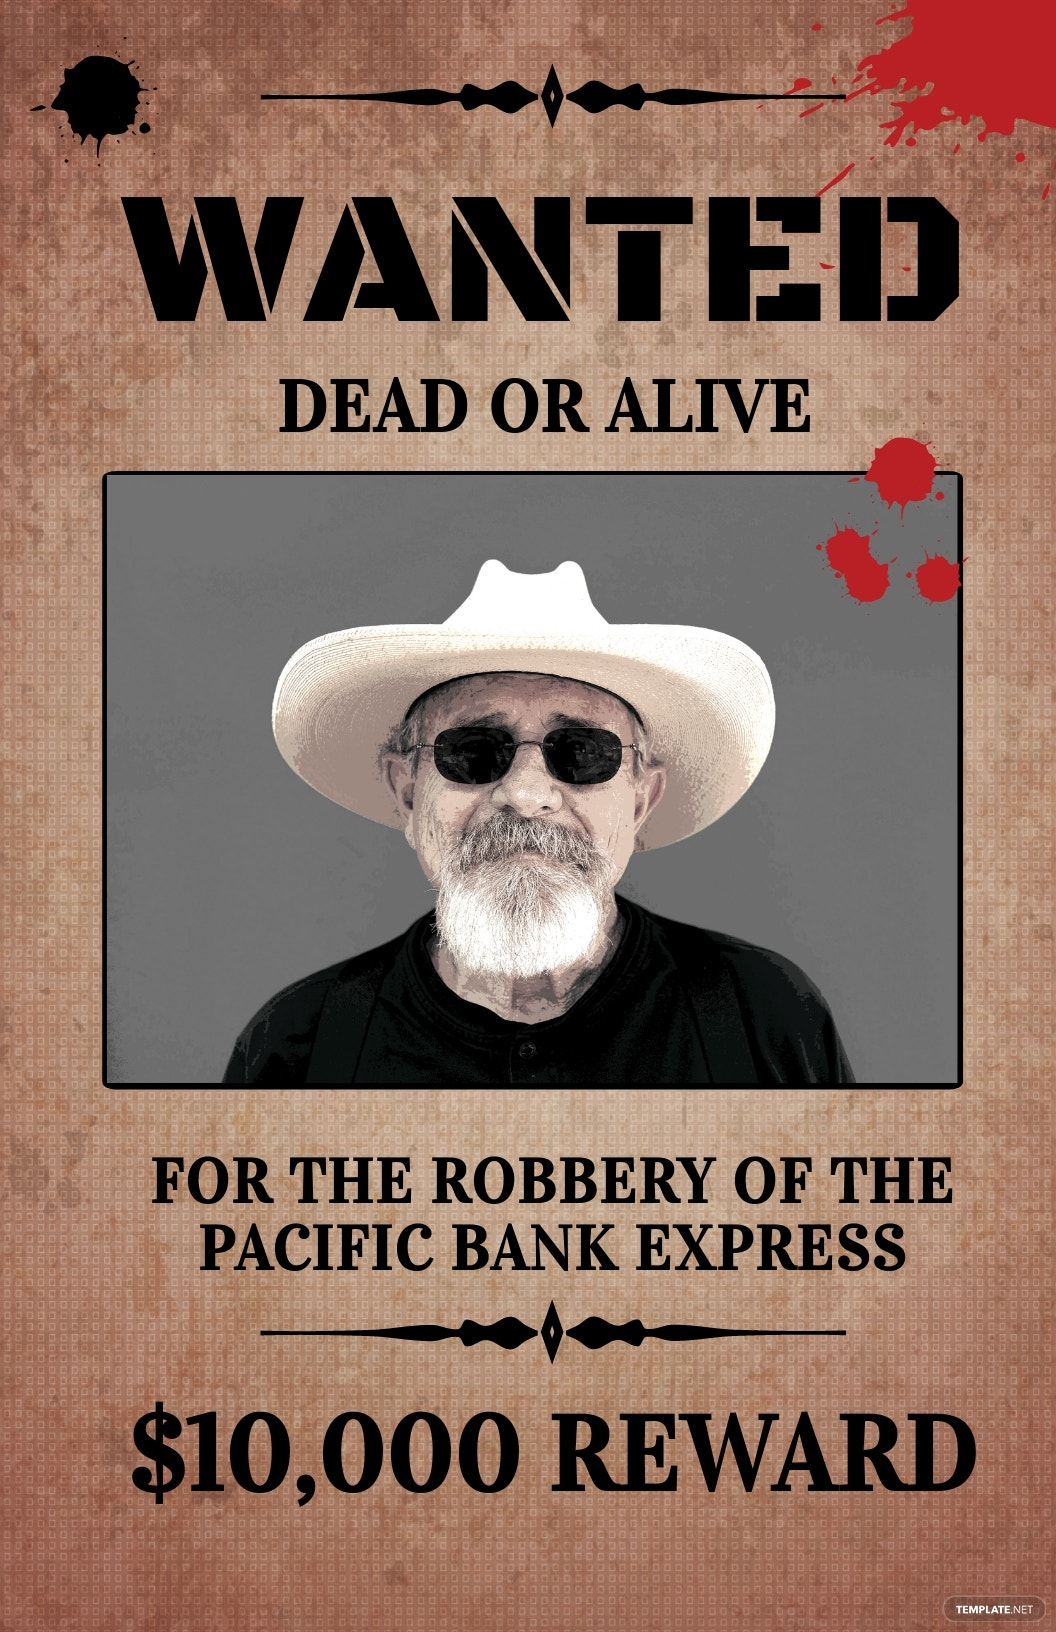 Rustic Wanted Poster Template [Free JPG] - PSD